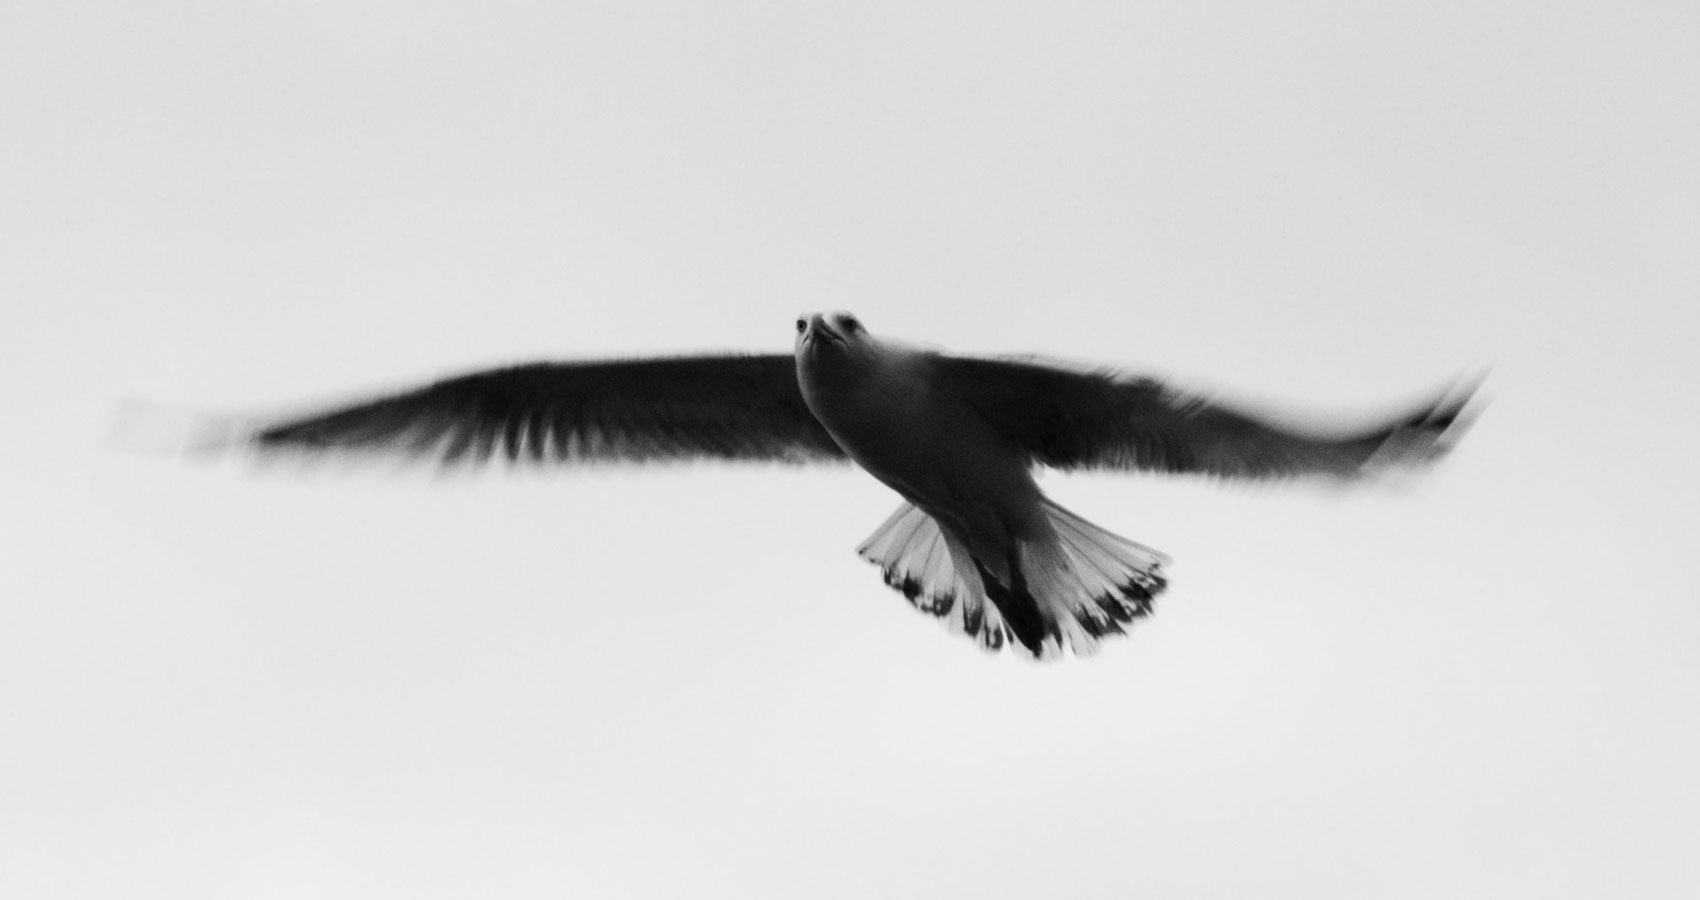 The Bird, a poem written by Christina Ciufo at Spillwords.com